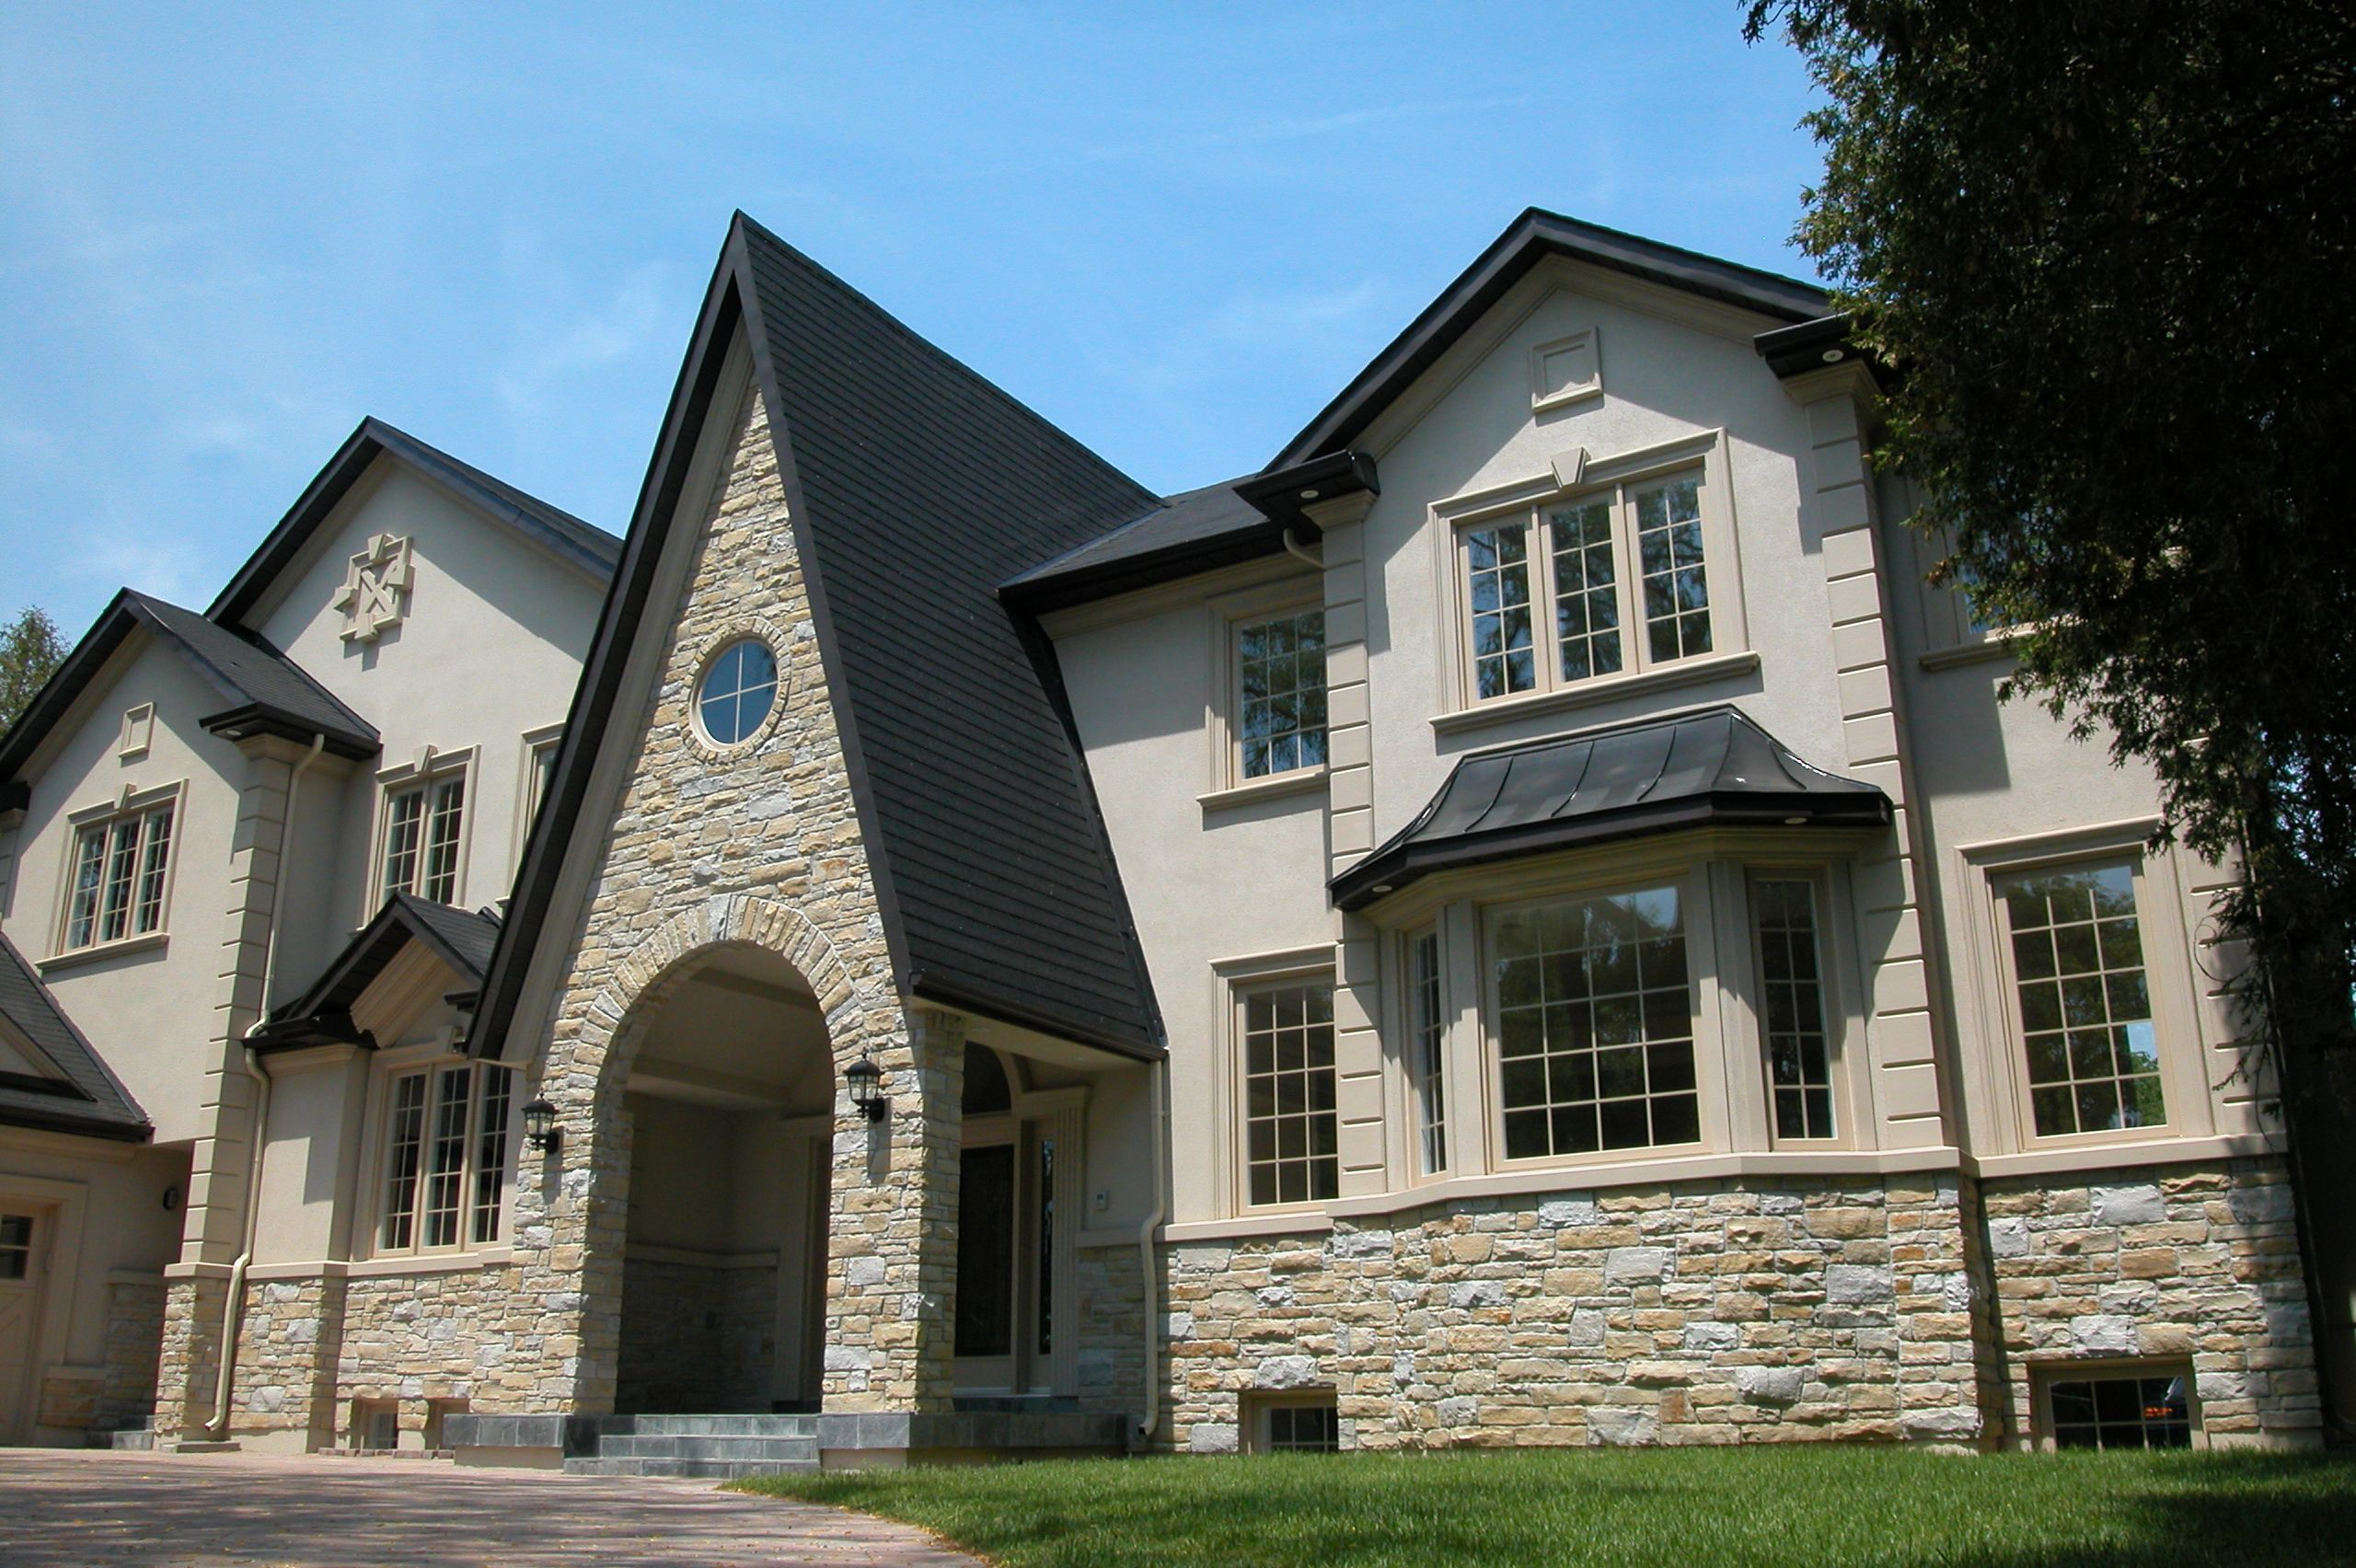 stucco and stone home designs - house design plans